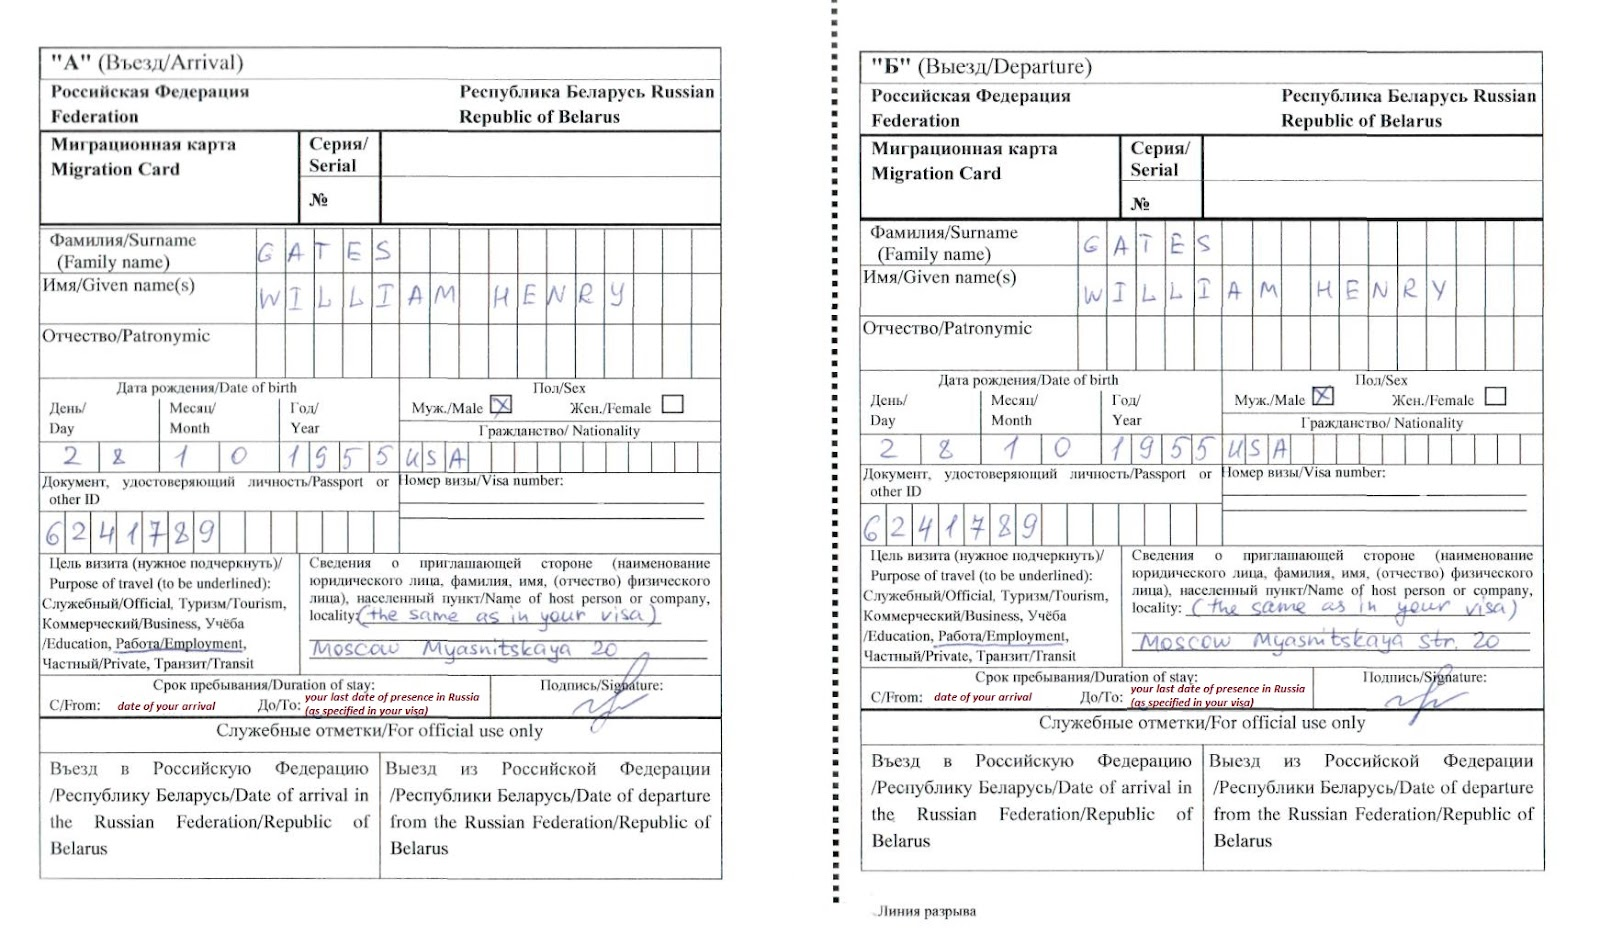 An example of a filled in Russian migration card